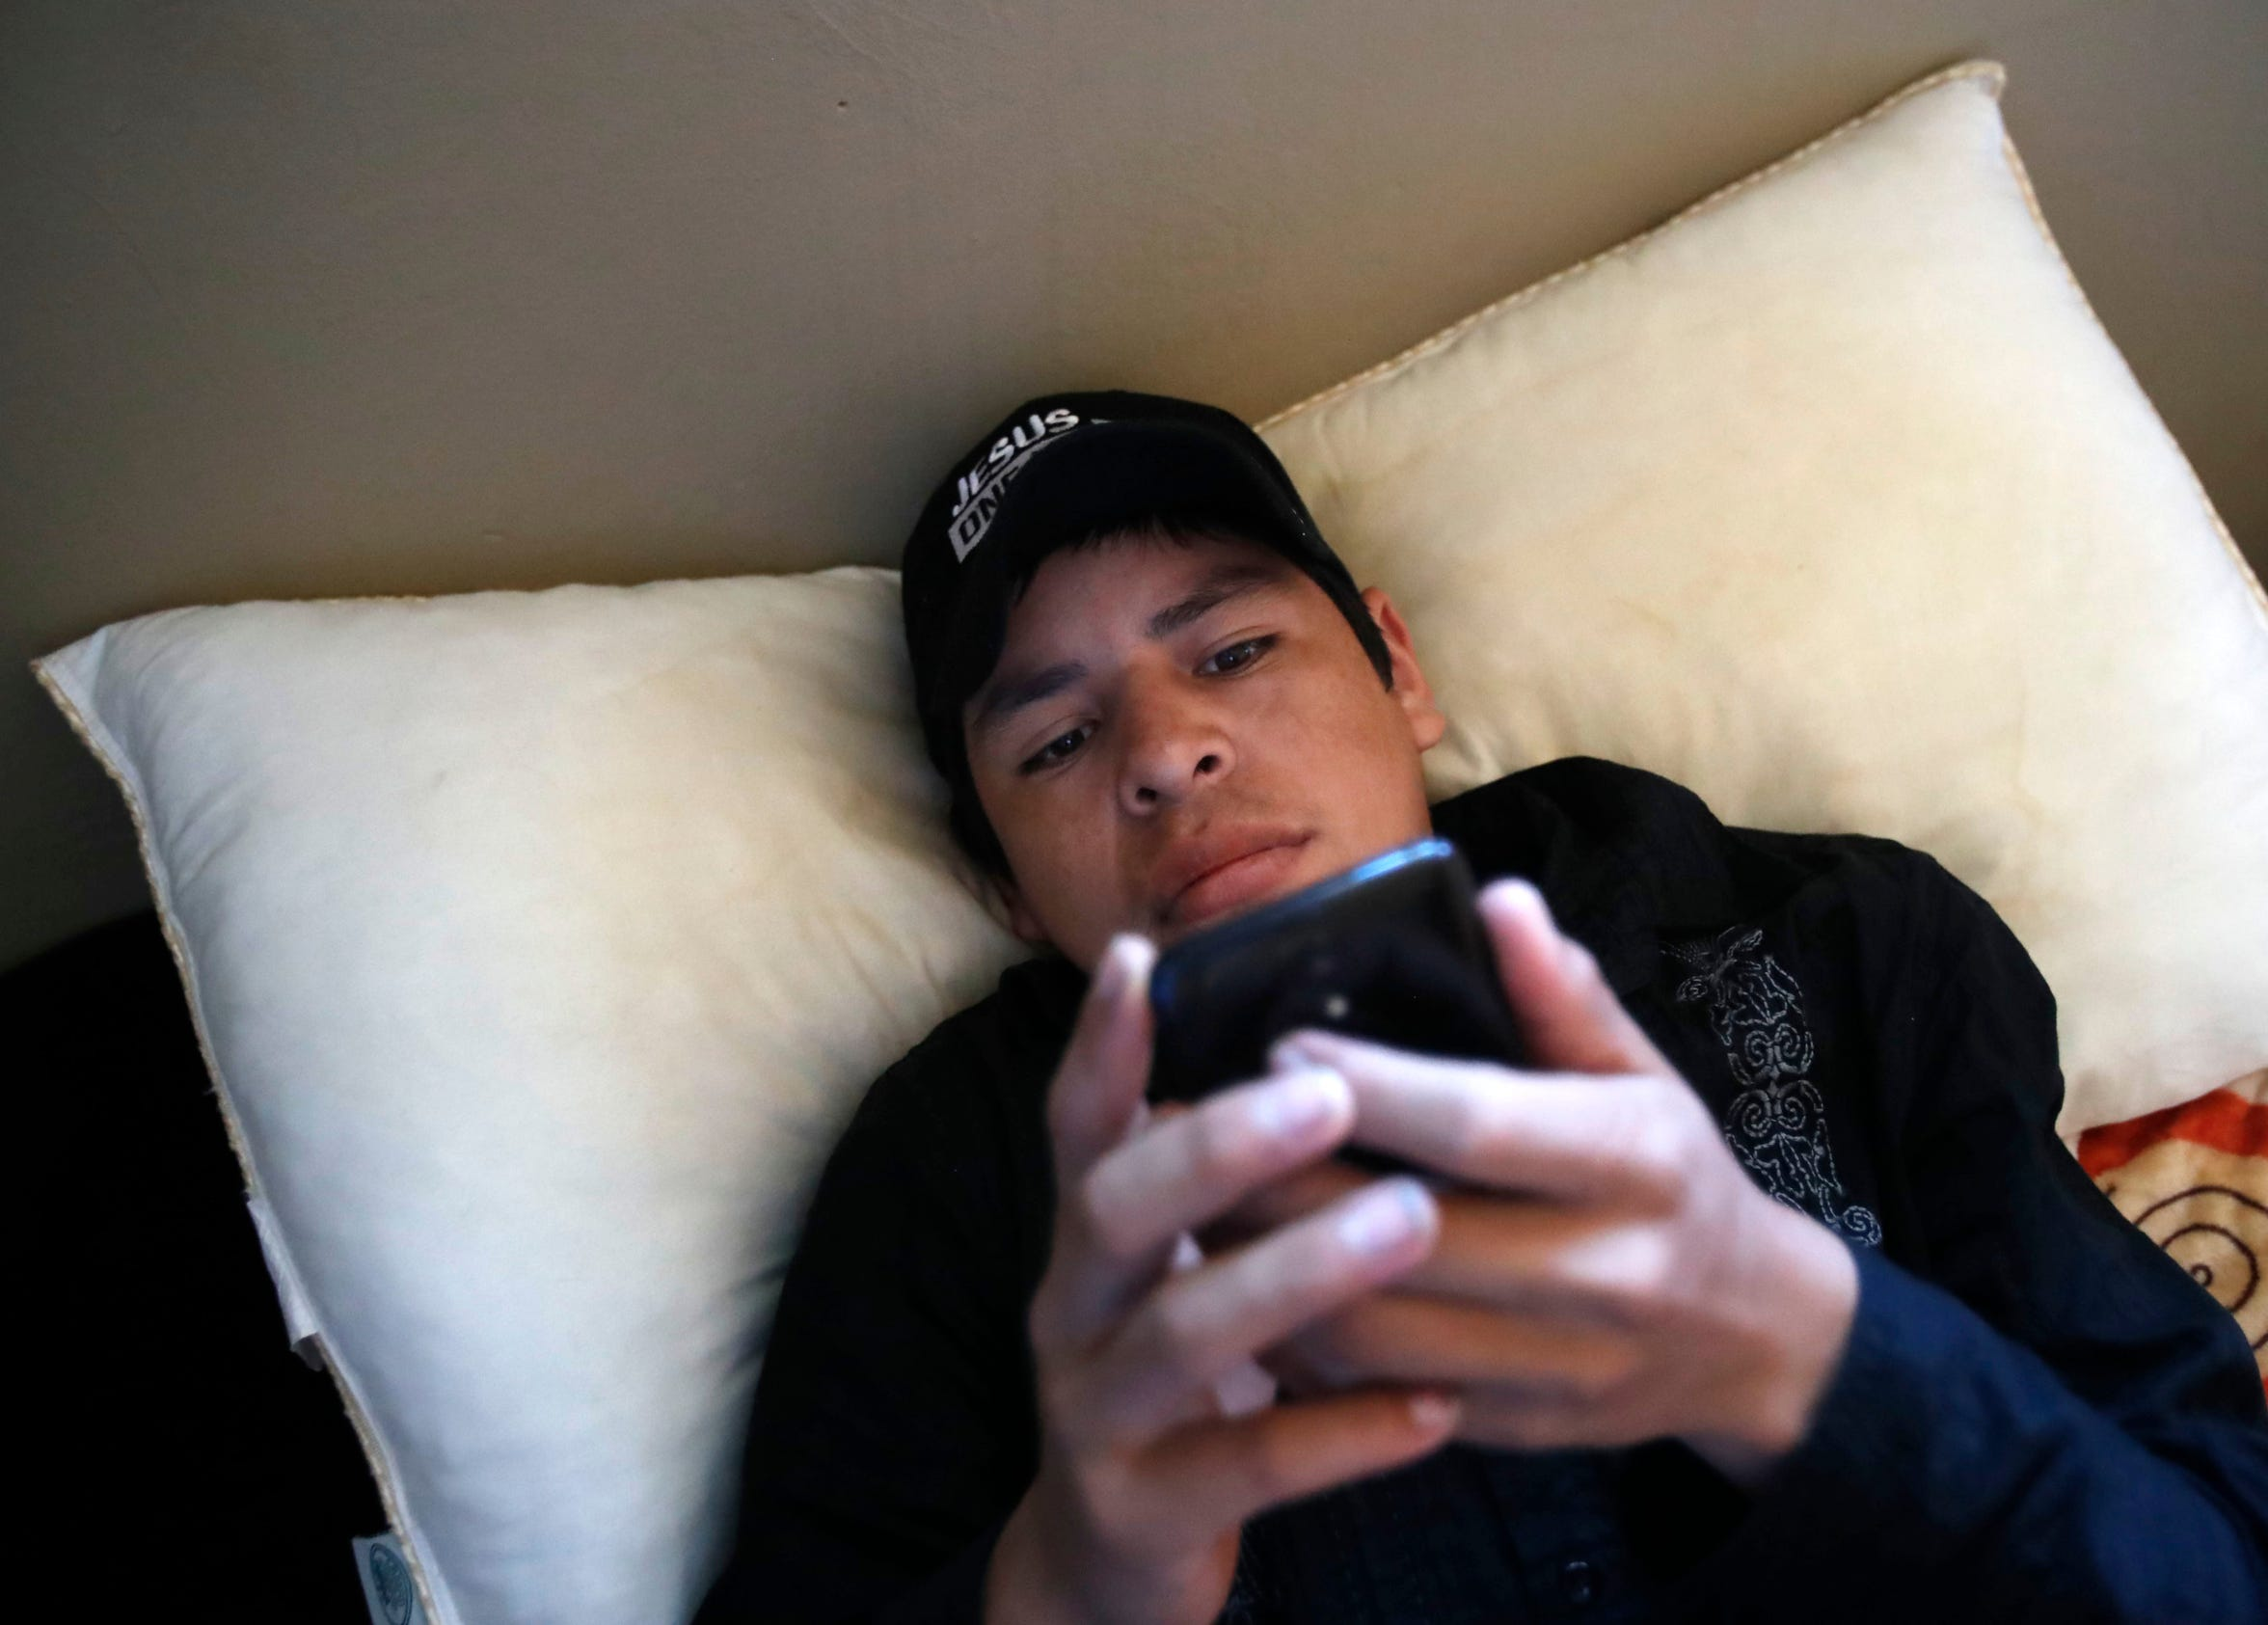 Artemio plays with his phone one morning at home. Artemio, now 18, spent 11 months in immigrant child detention centers in San Diego and New York.